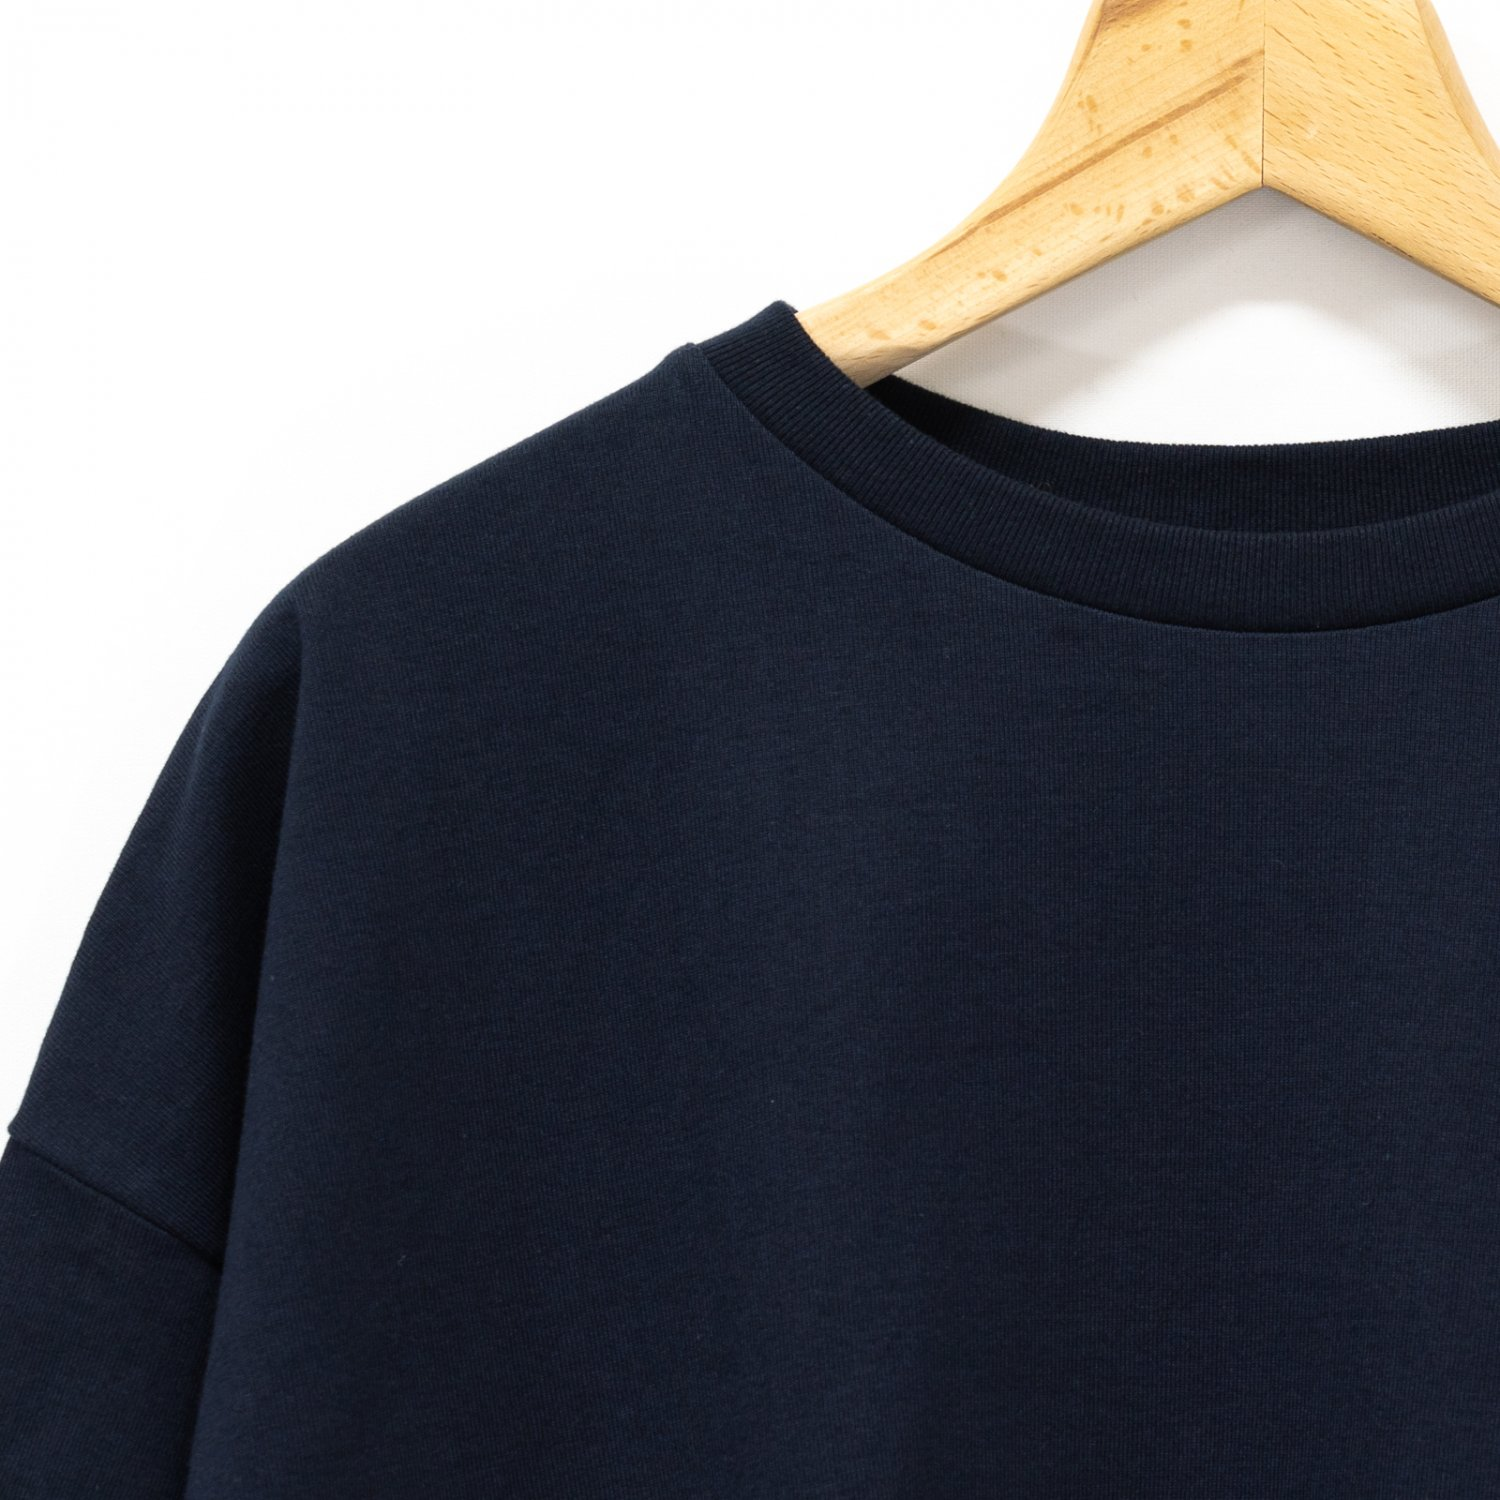 Graphpaper * S/S Oversized Tee * Navy